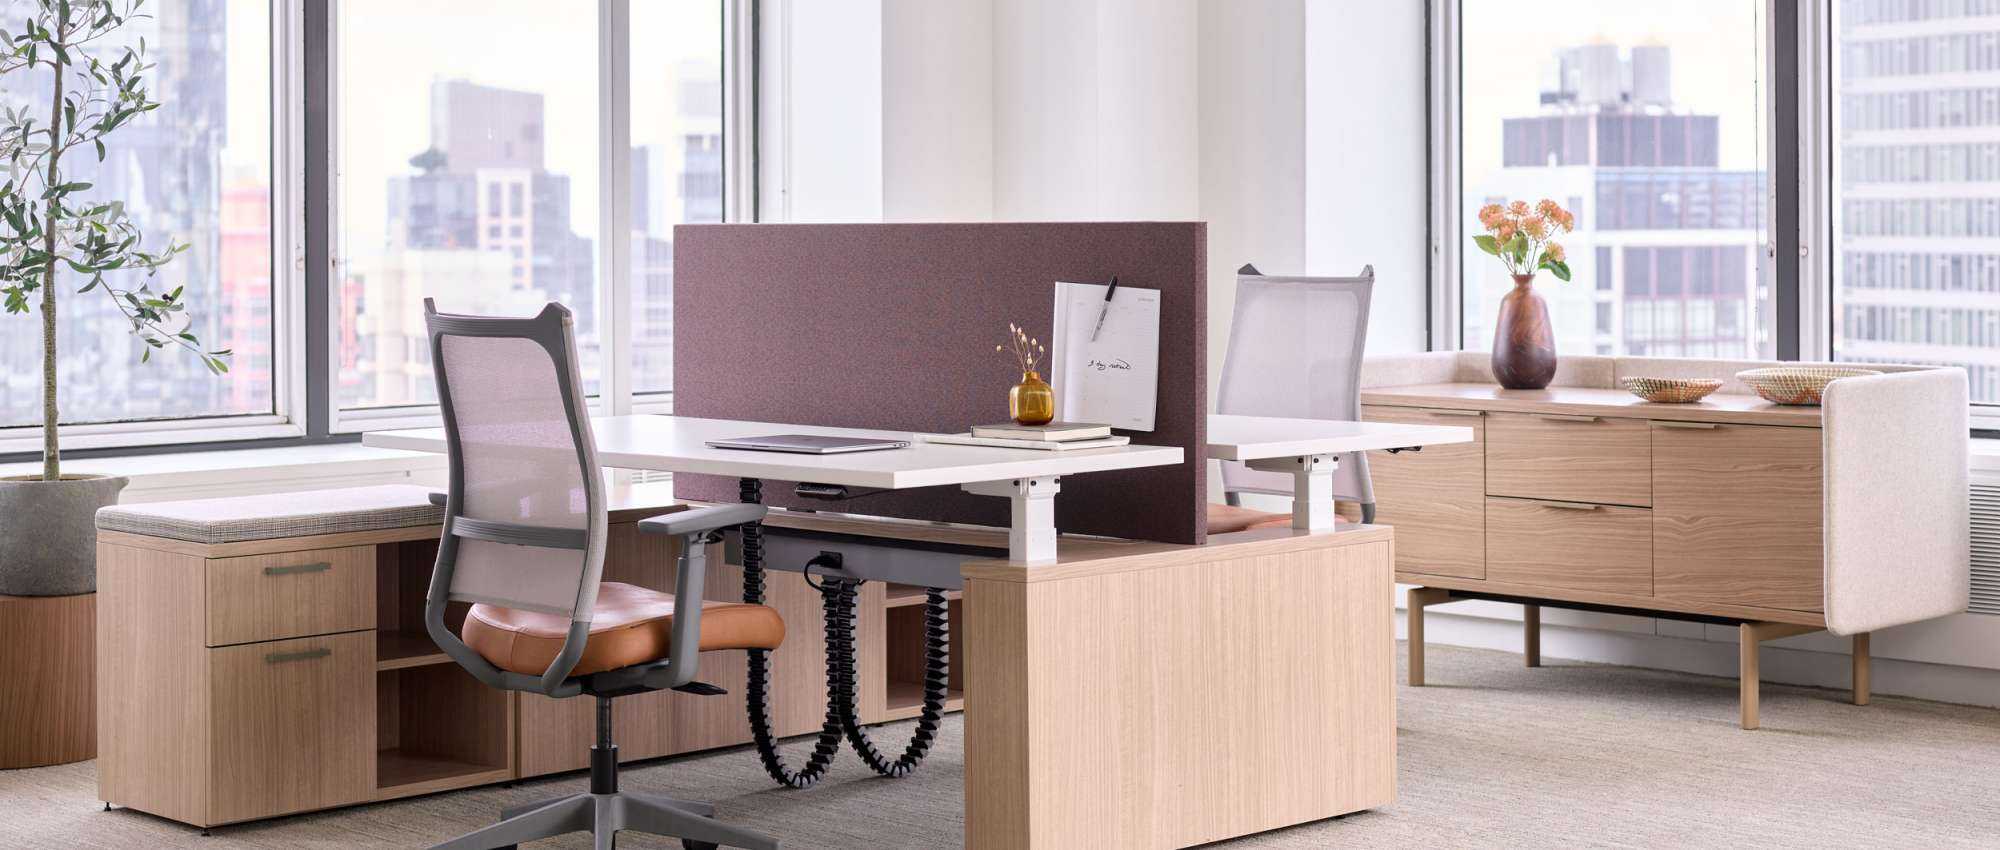 New York City showroom with workstations and storage